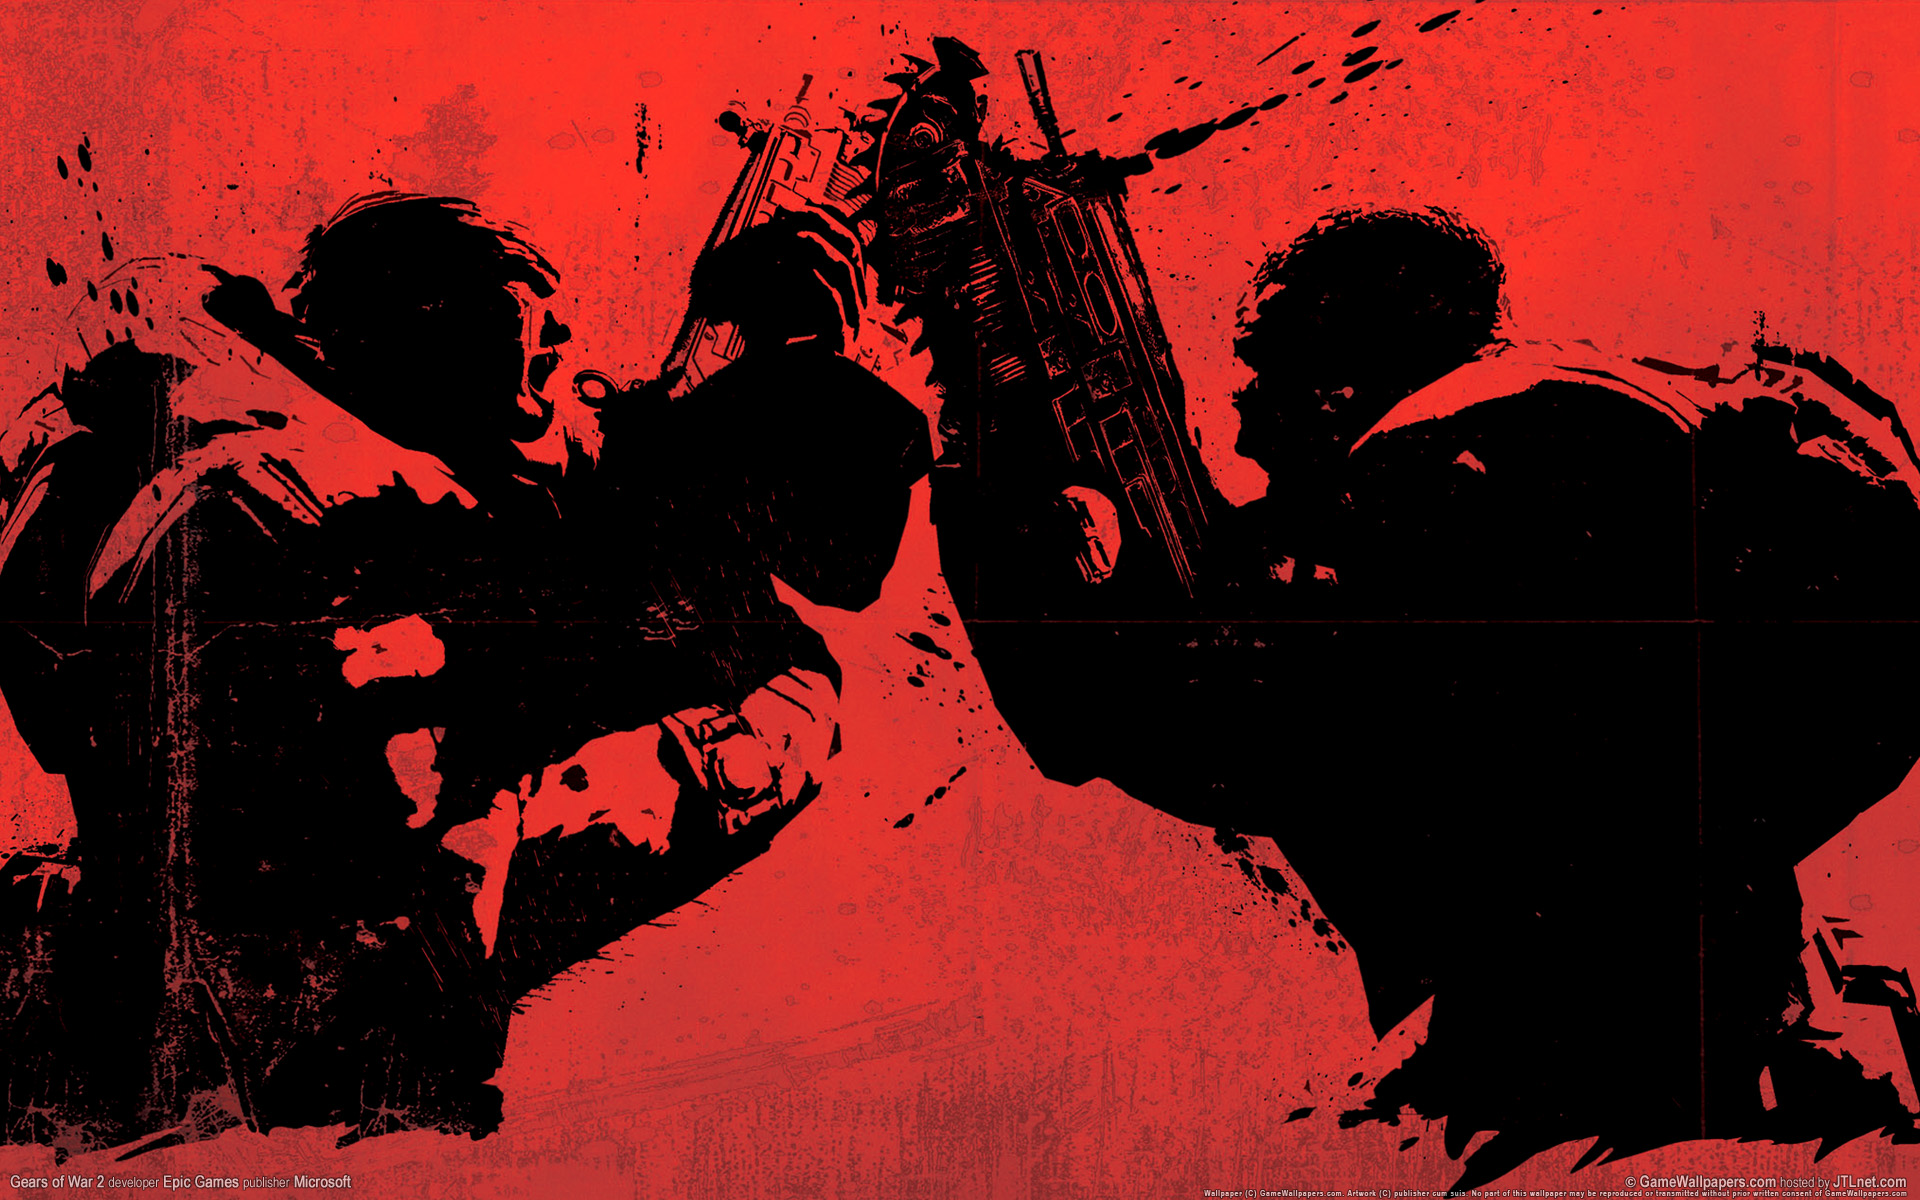 wallpaper_gears_of_war_2_02_1920x1200.jpg